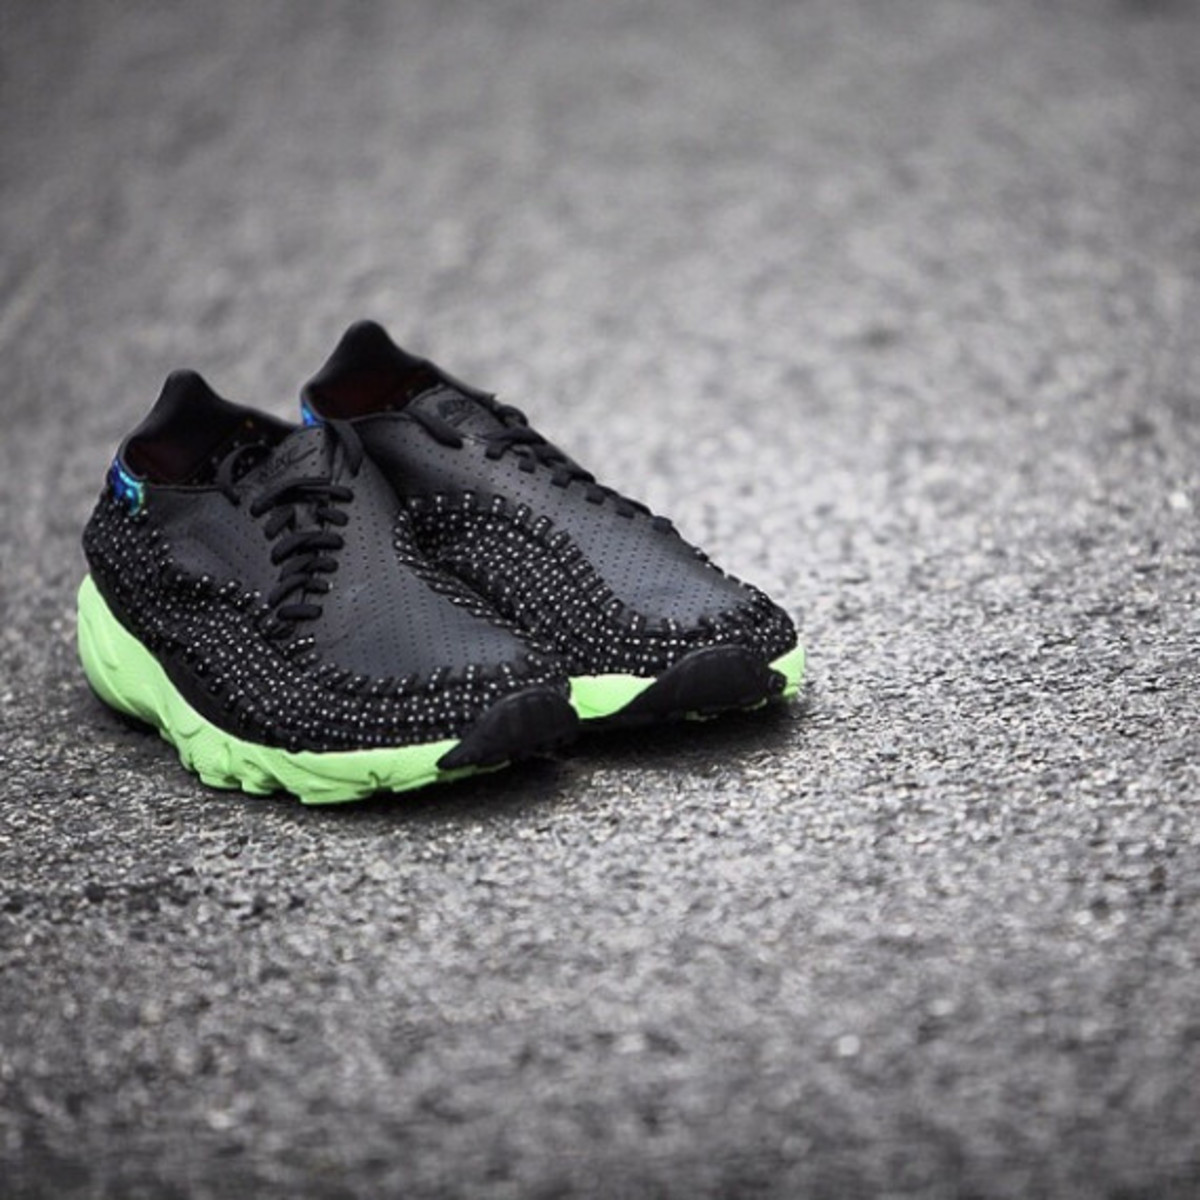 """Nike Sportswear """"City Pack: Shanghai"""" Collection - 4"""